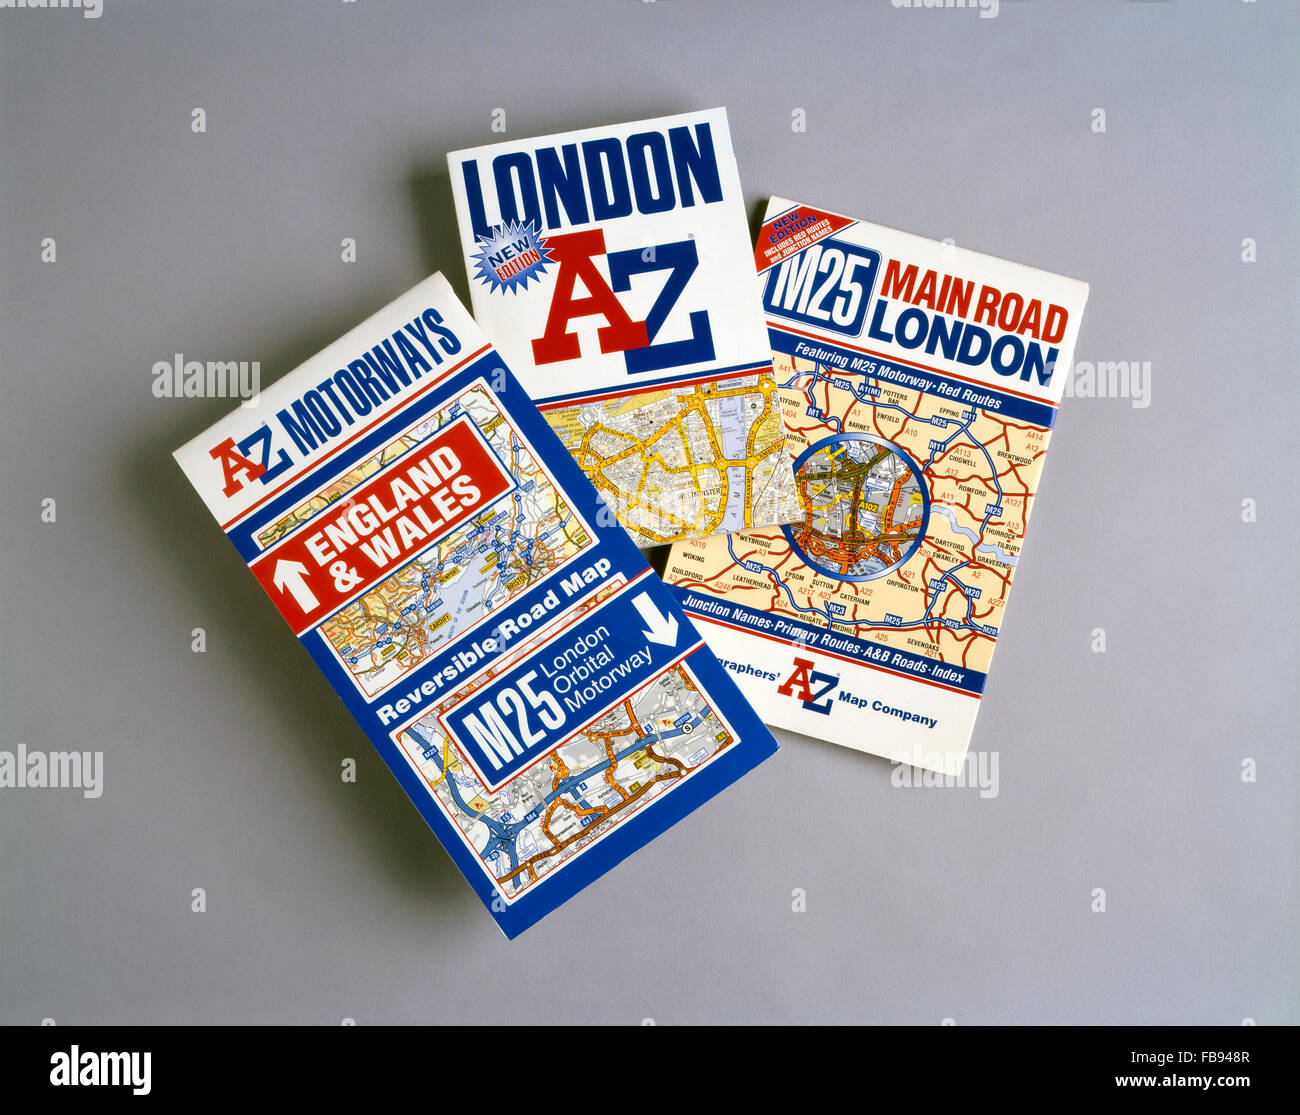 A to Z maps and map books - London and M25 - Stock Image